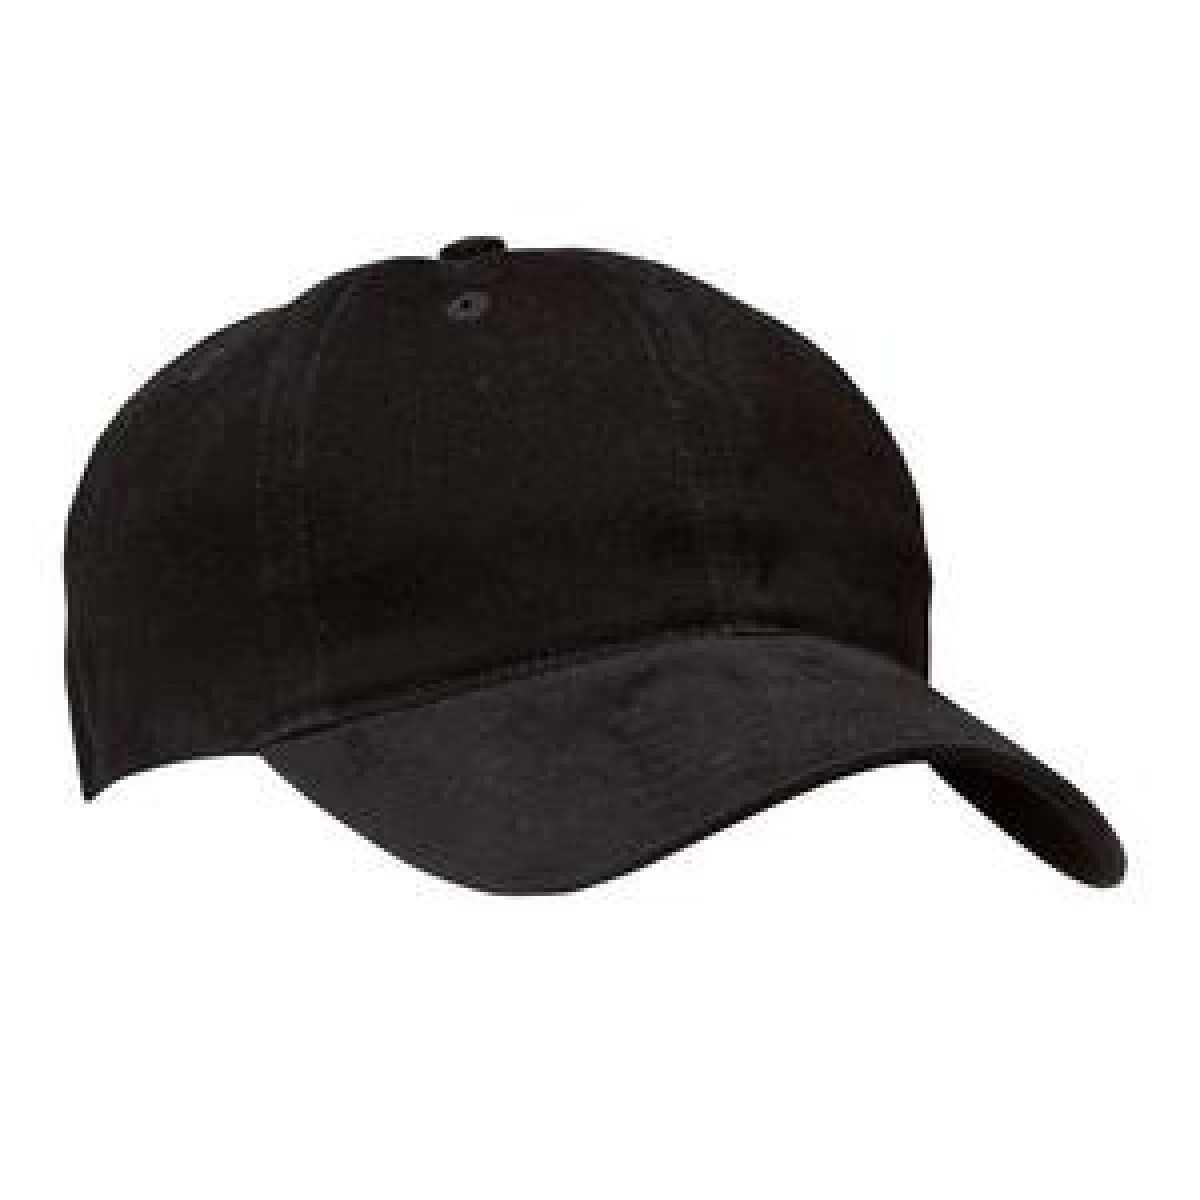 Black Low Profile Baseball Cap - Baseball Cap PNG